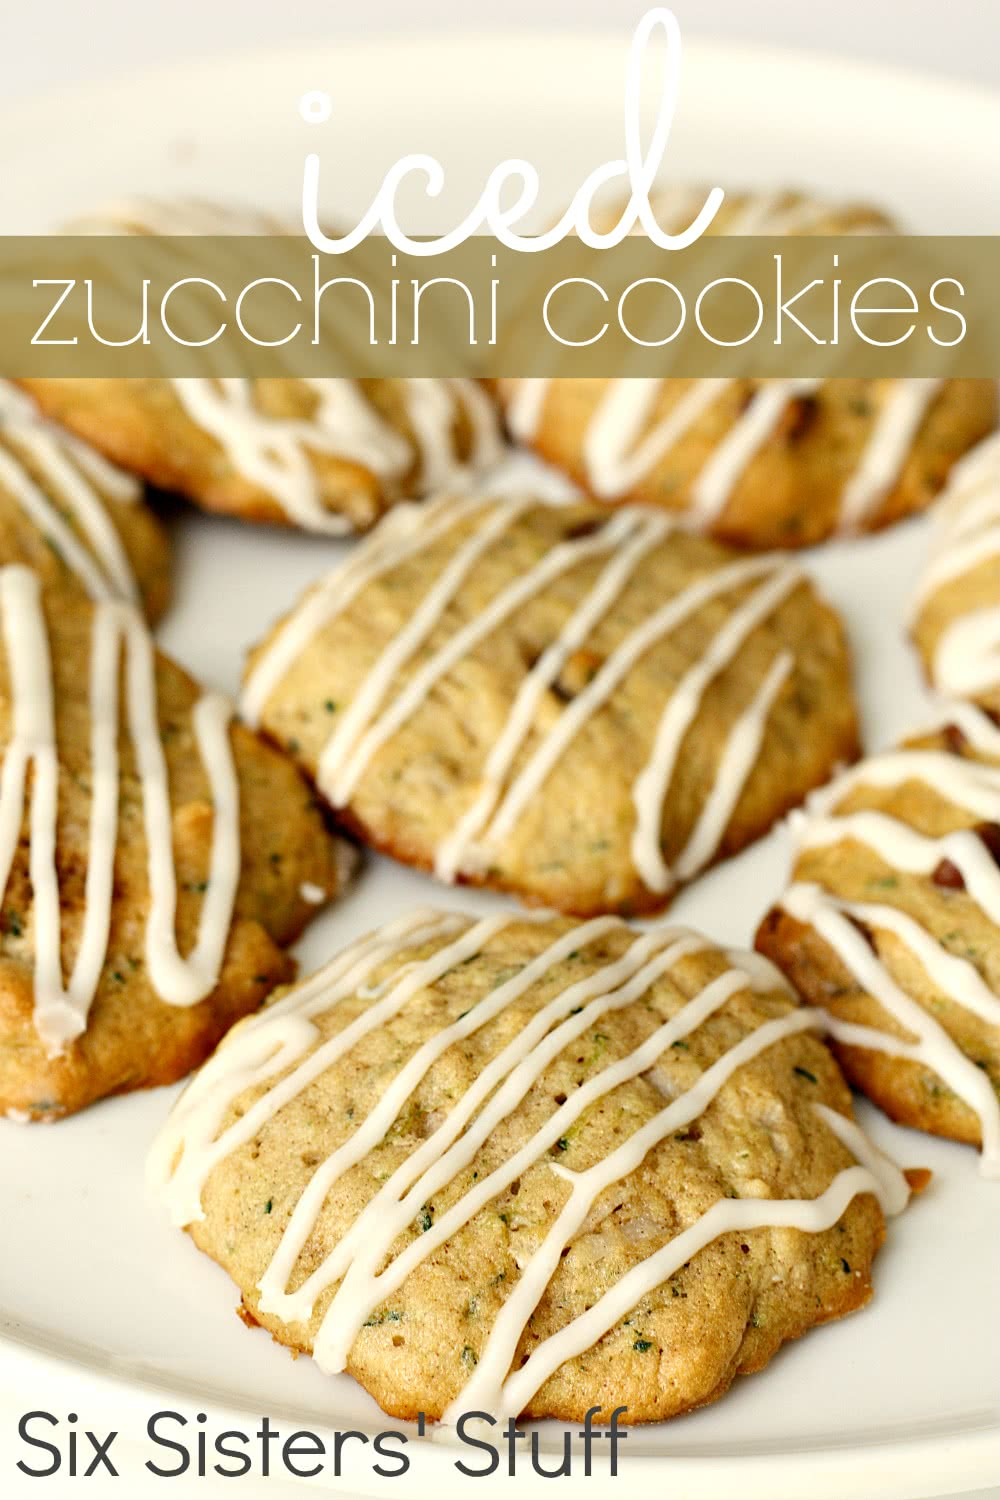 Iced Zucchini Cookies Recipe